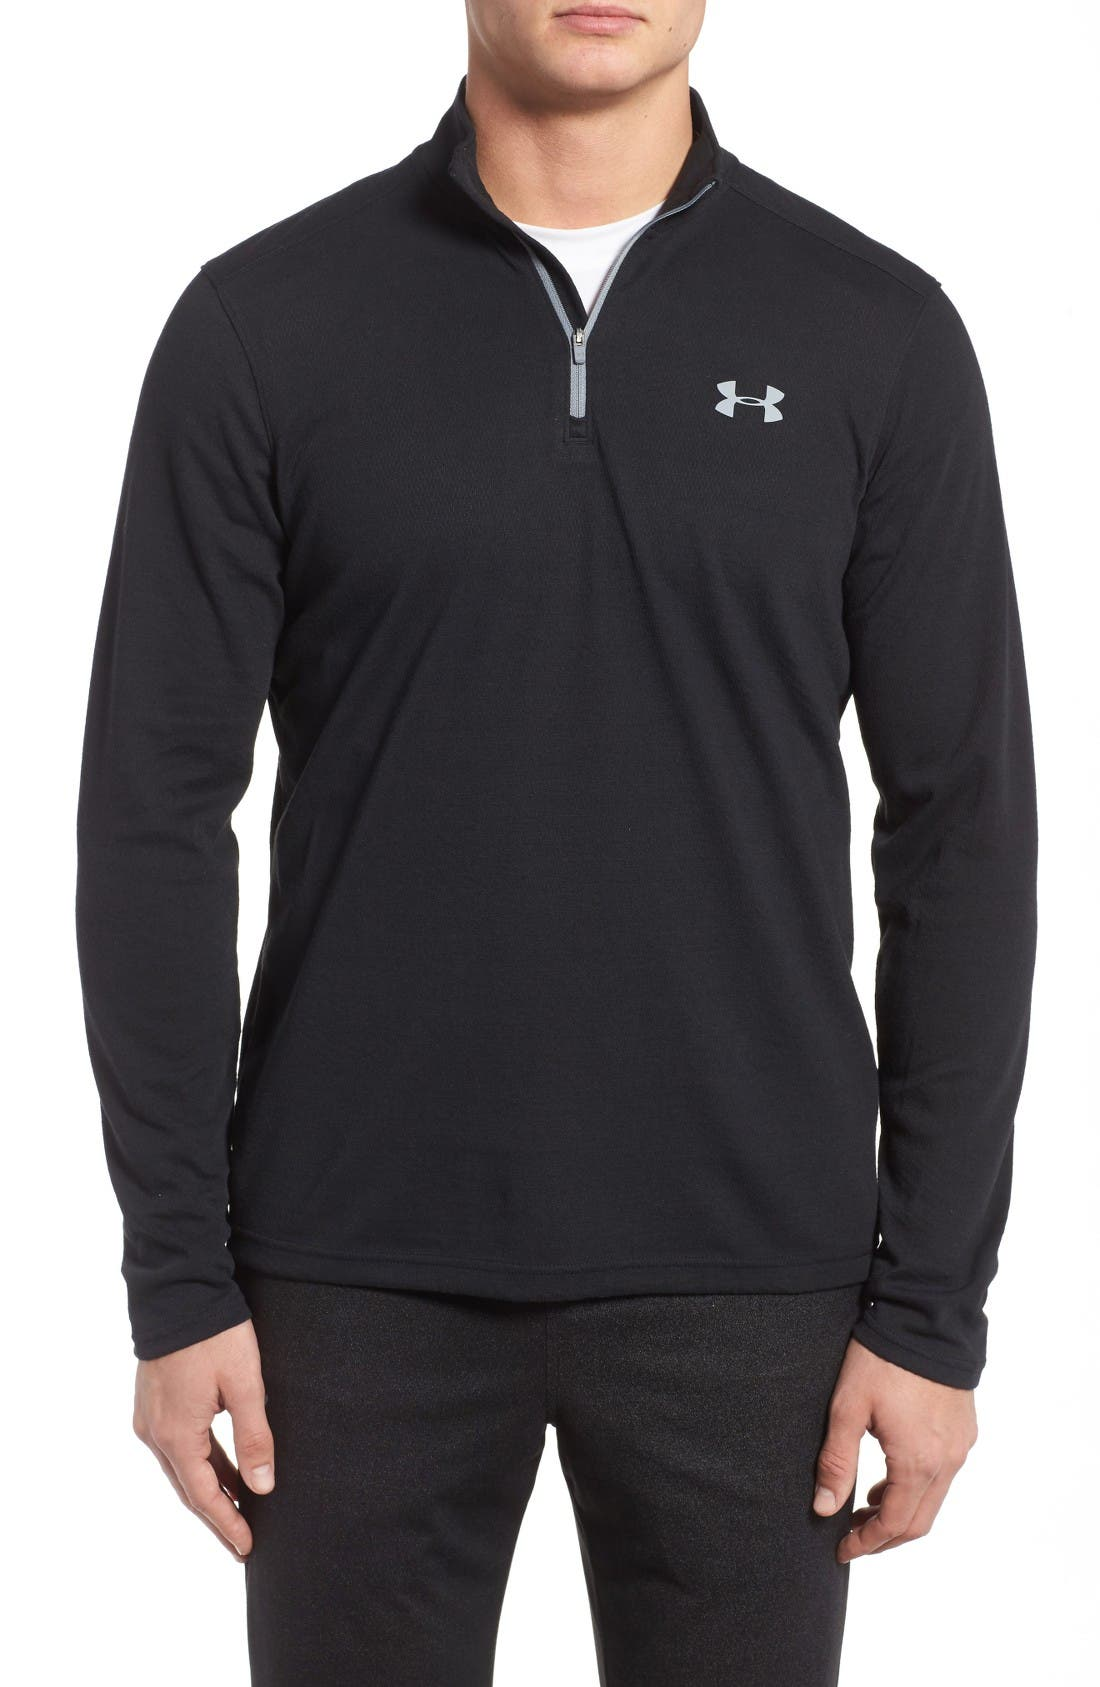 Main Image - Under Armour ColdGear® Quarter-Zip Pullover